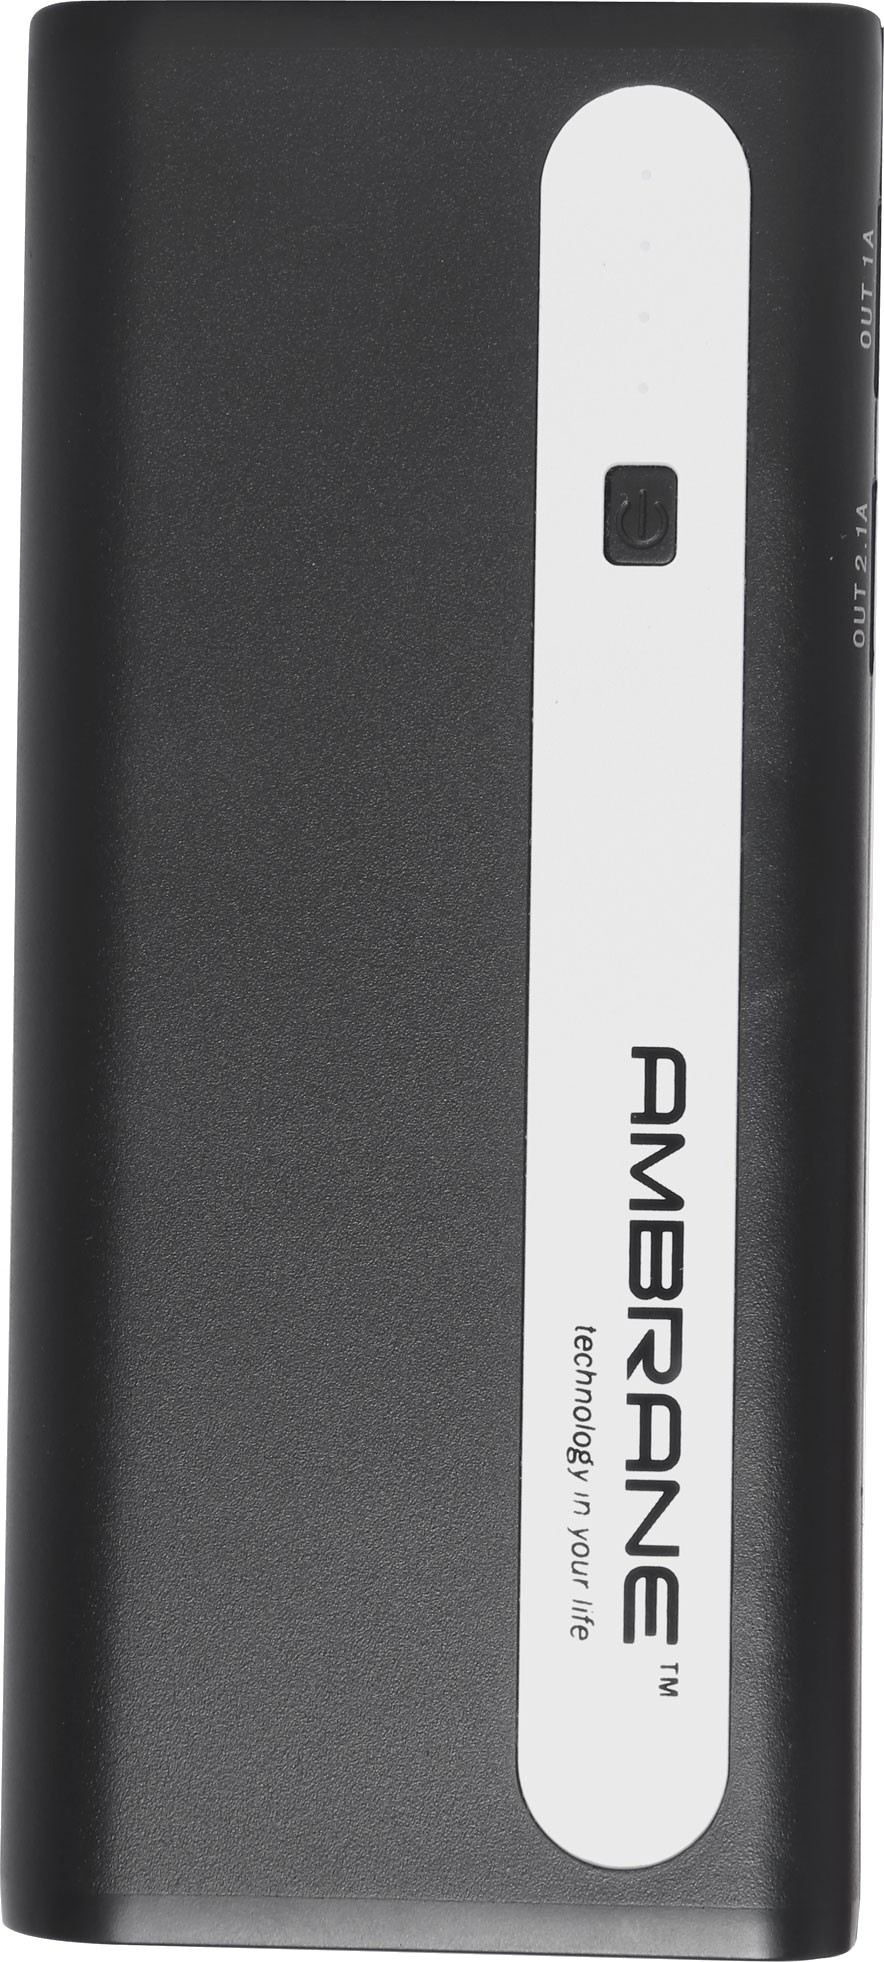 Ambrane Power Bank 13000 mAh Image